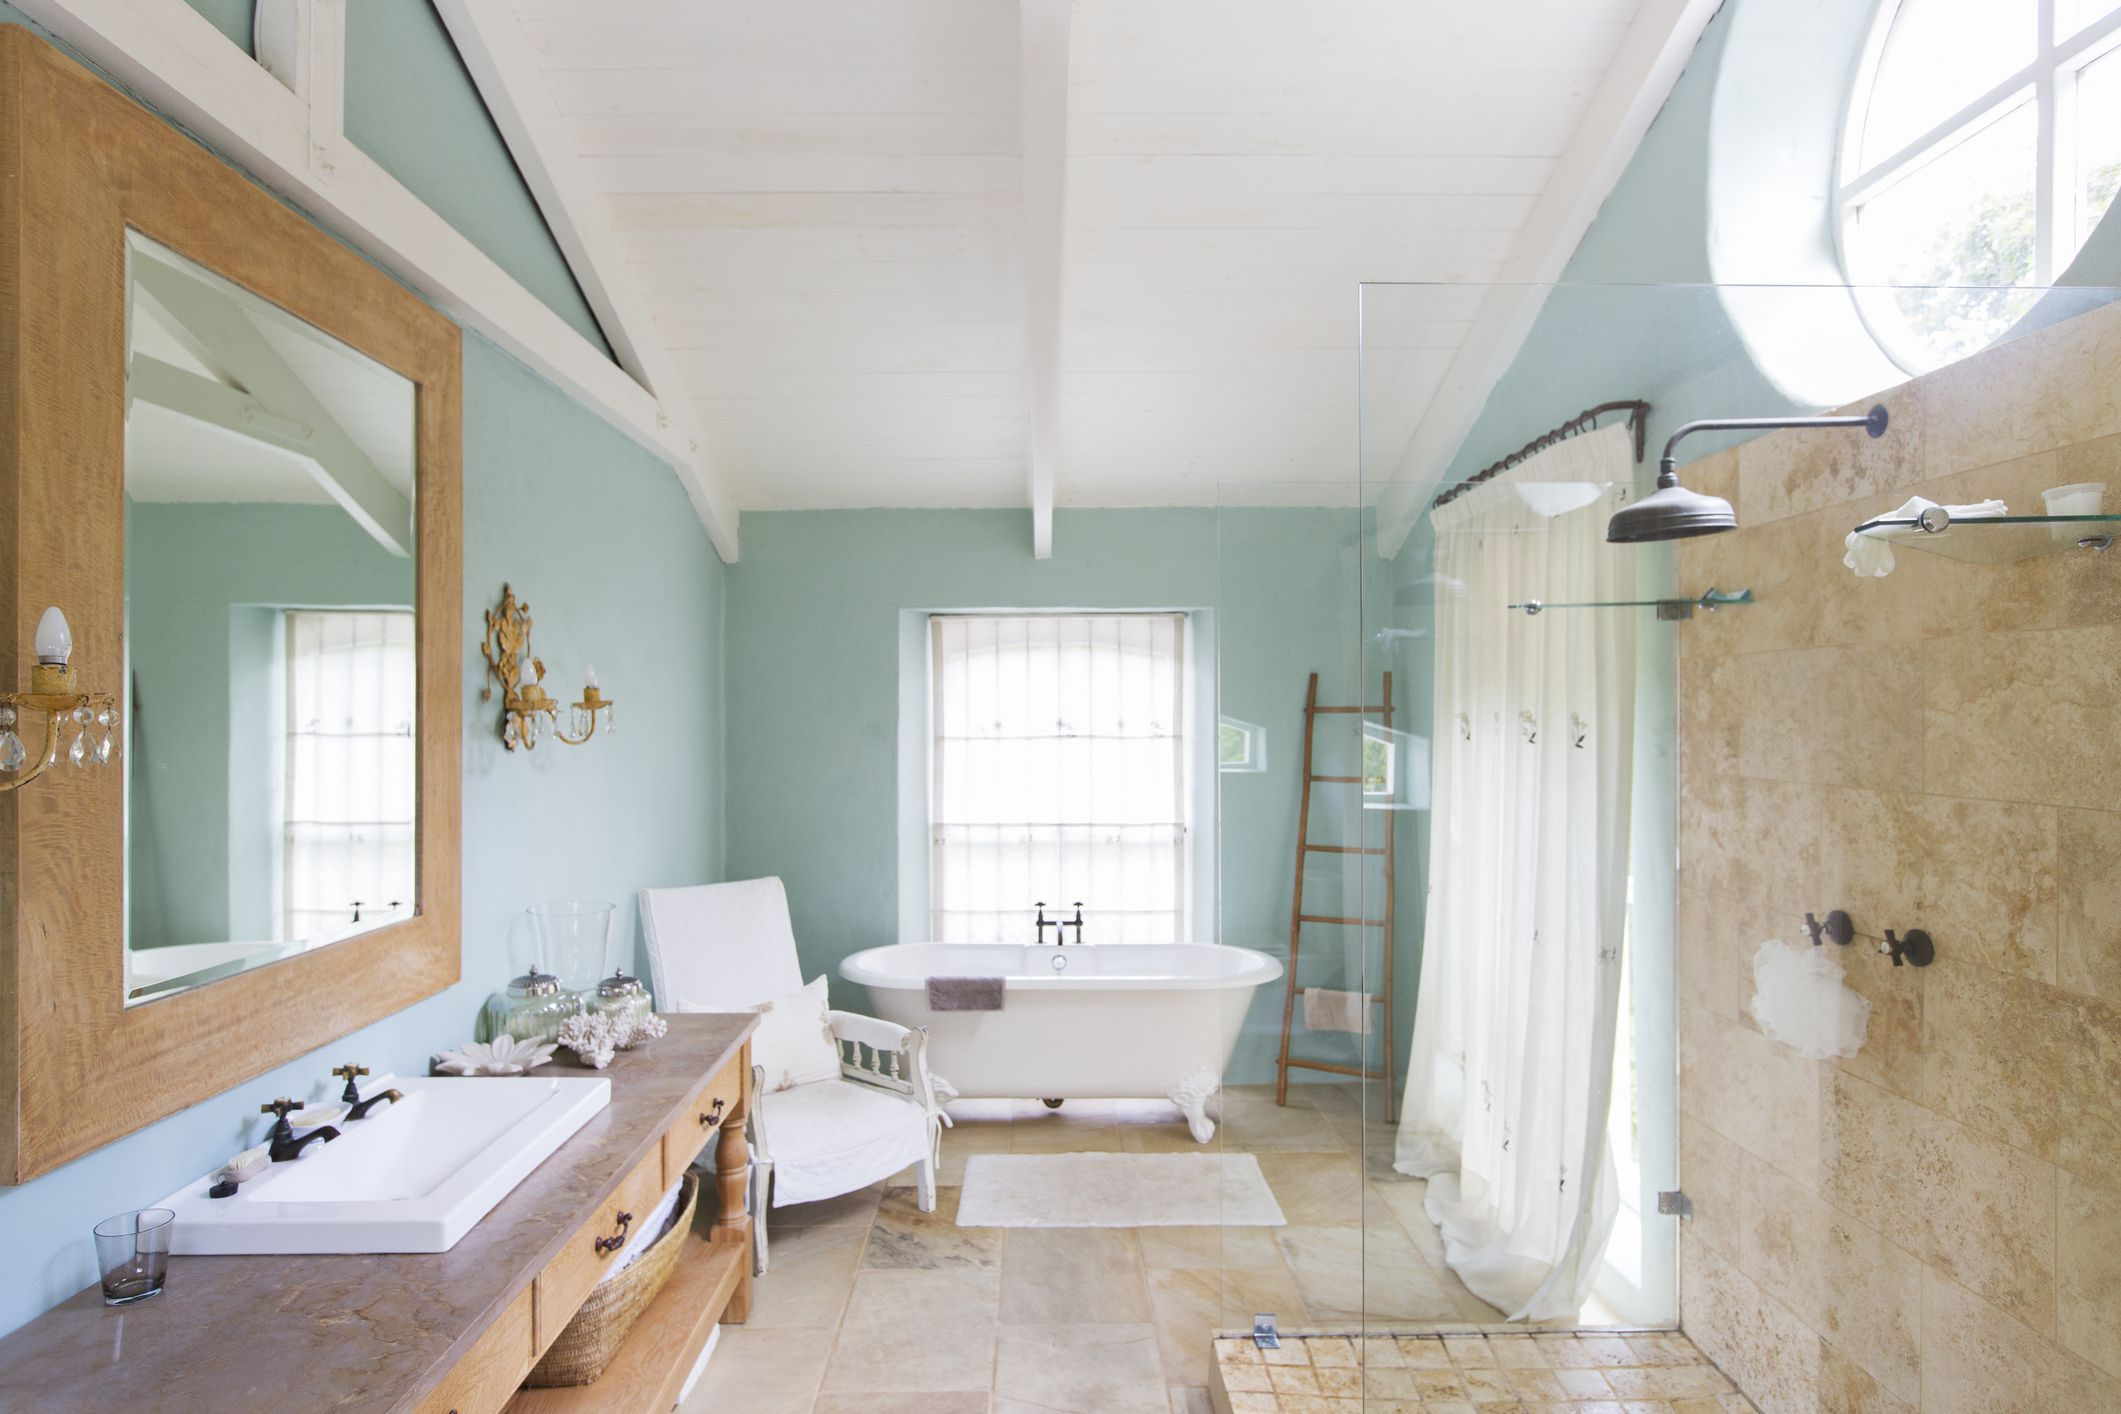 What type of paint is best for bathroom walls - What Type Of Paint Is Best For Bathroom Walls 6